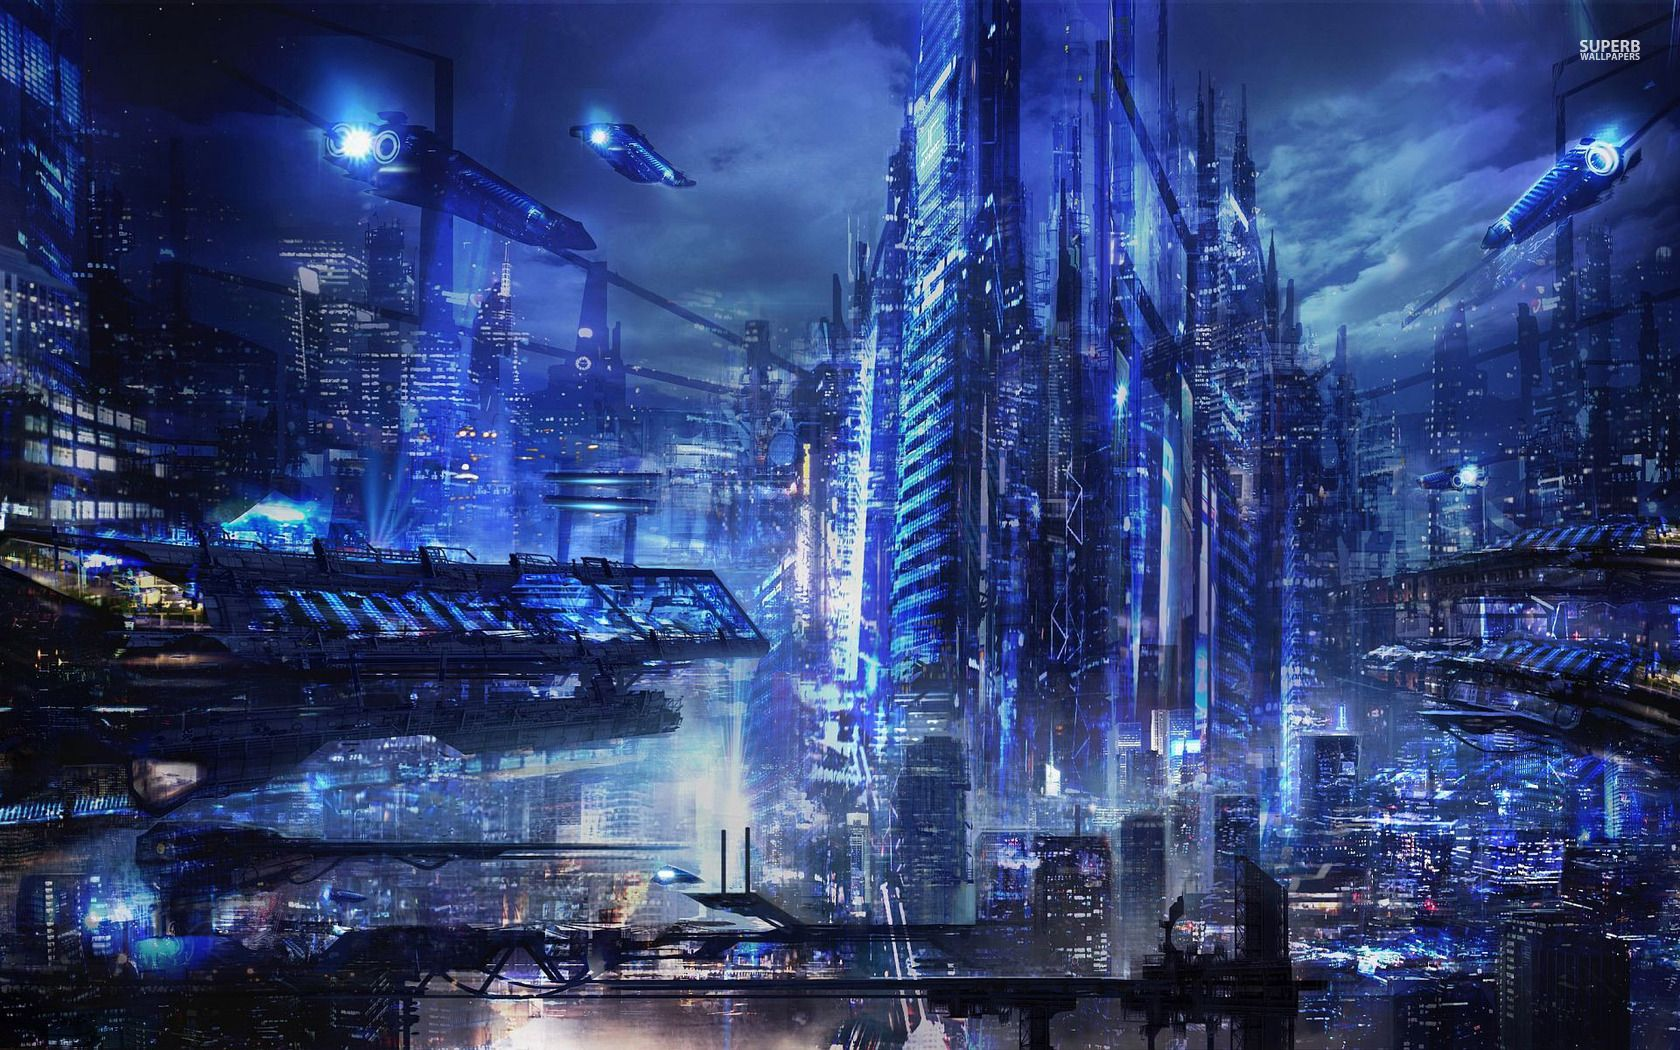 cyberpunk metropolis wallpaper - photo #36